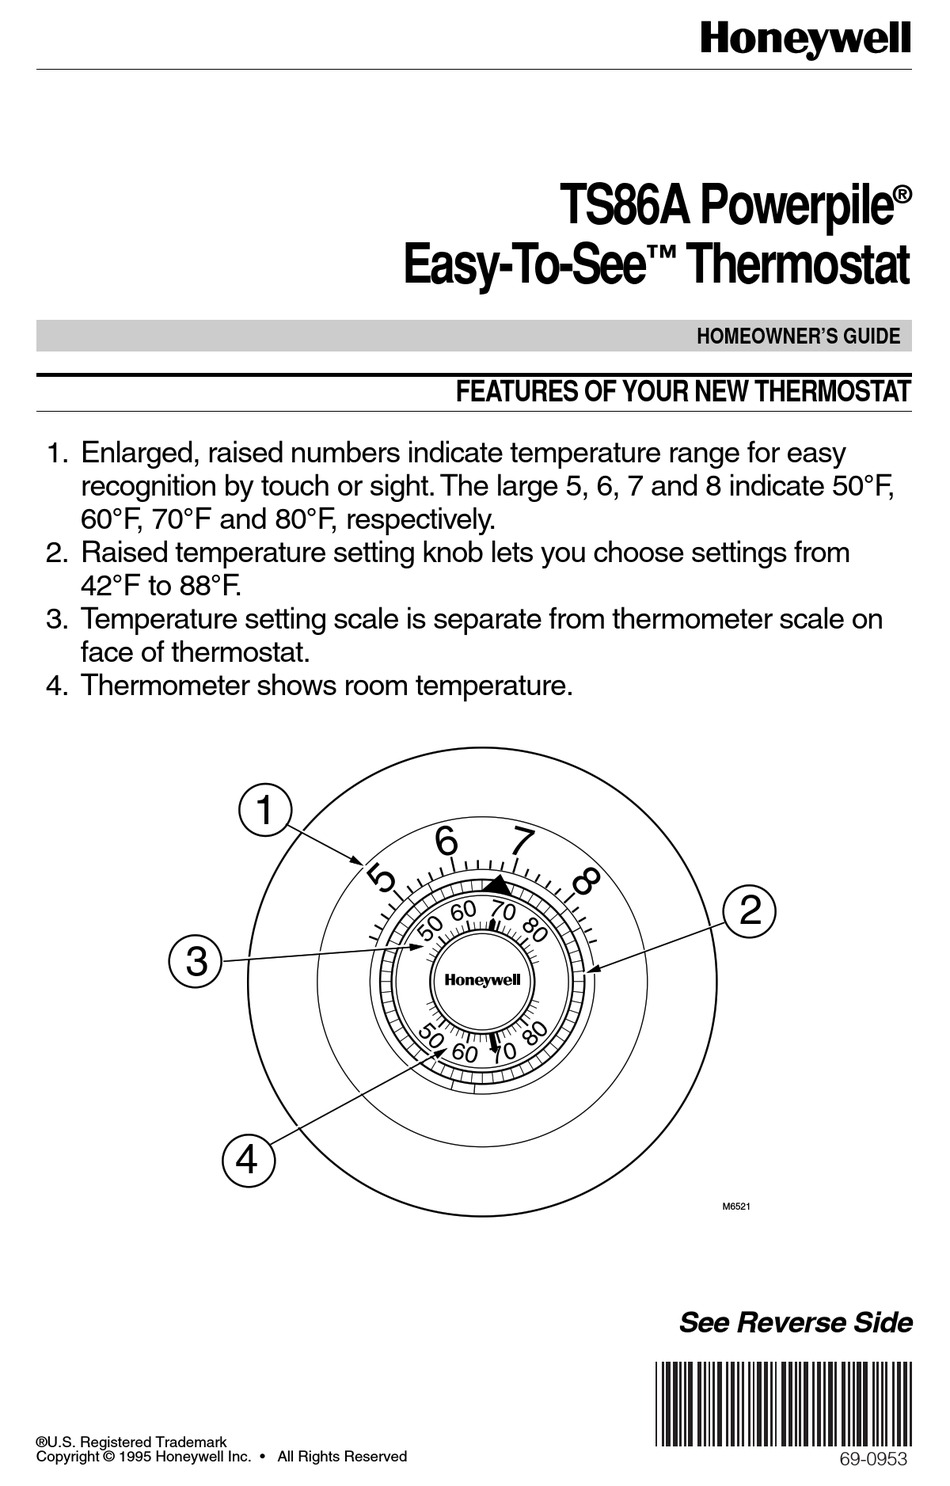 HONEYWELL EASY-TO-SEE POWERPILE TS86A HOMEOWNER'S MANUAL